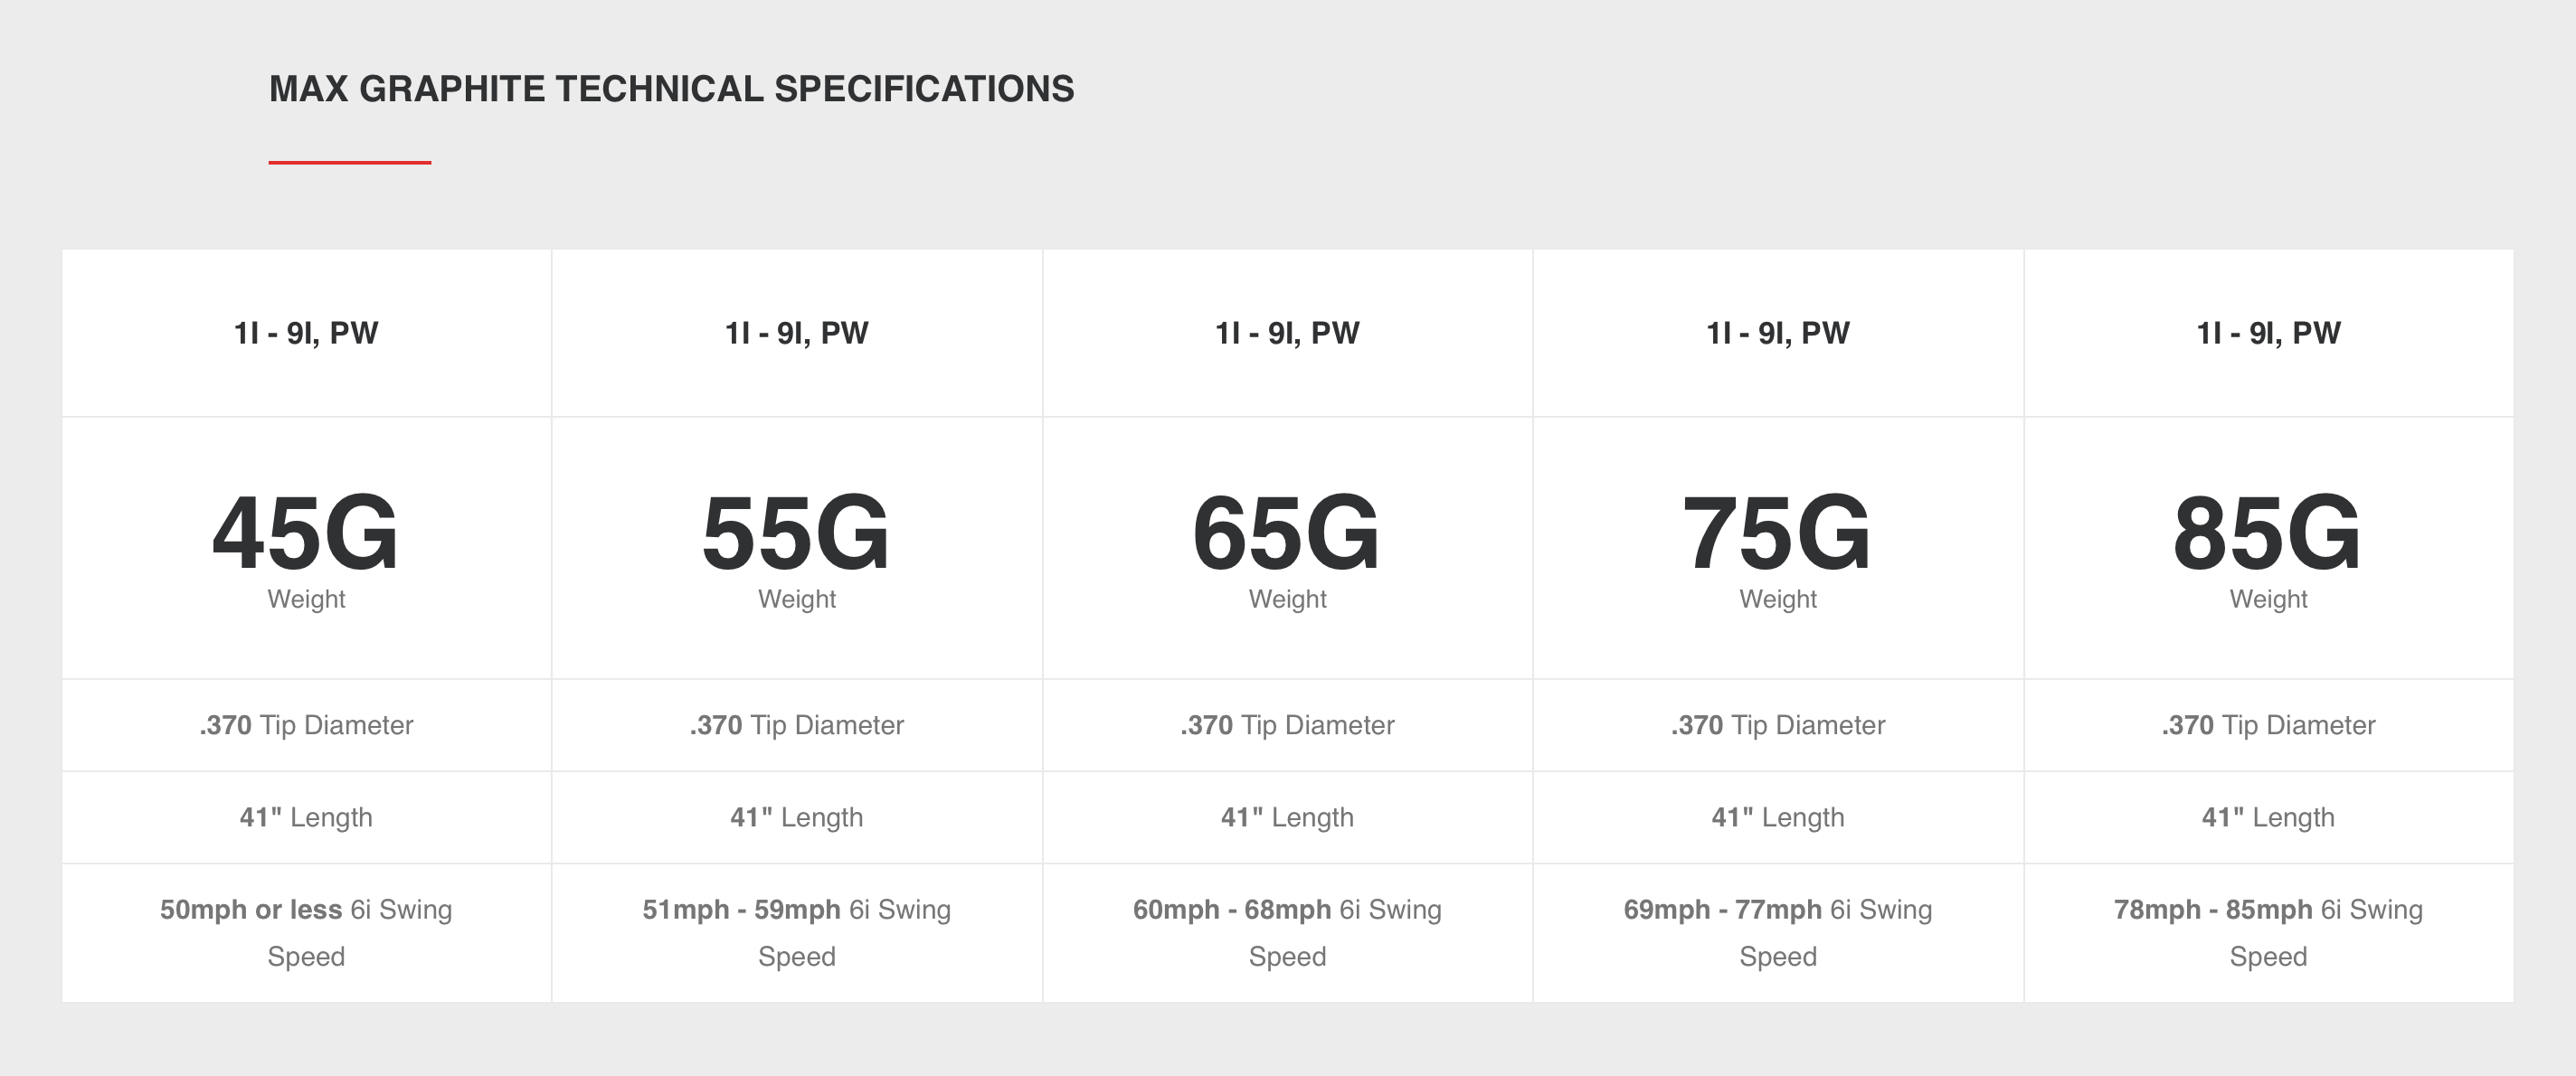 KBS MAX GRAPHITE IRON specifications